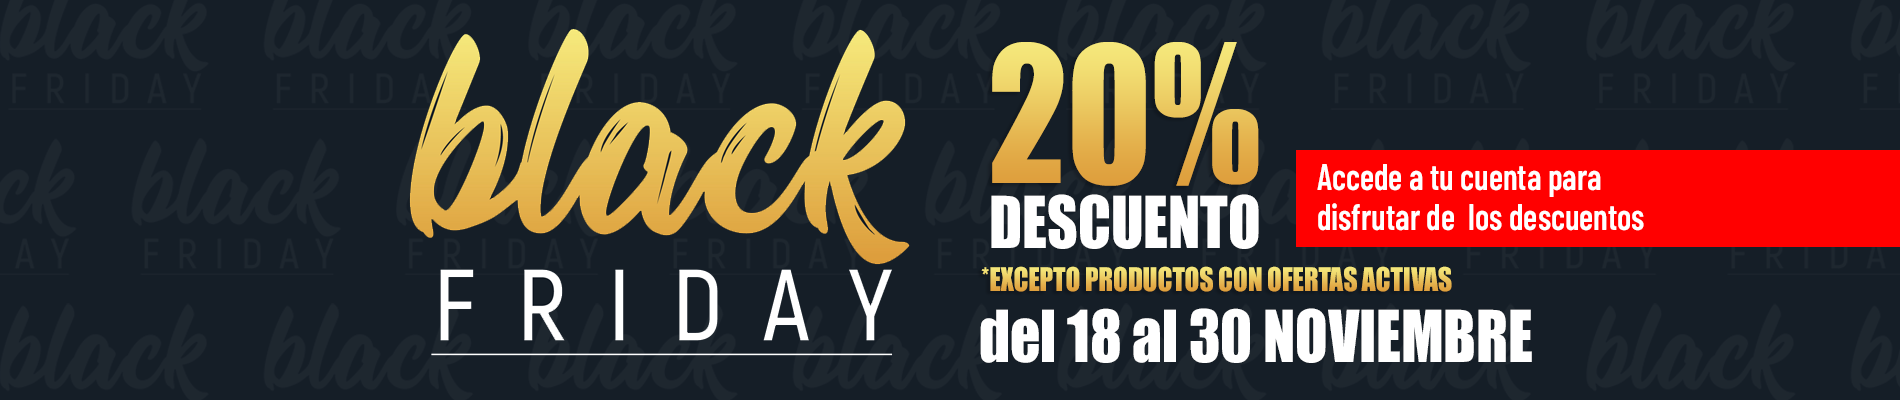 BlackFriday 20%